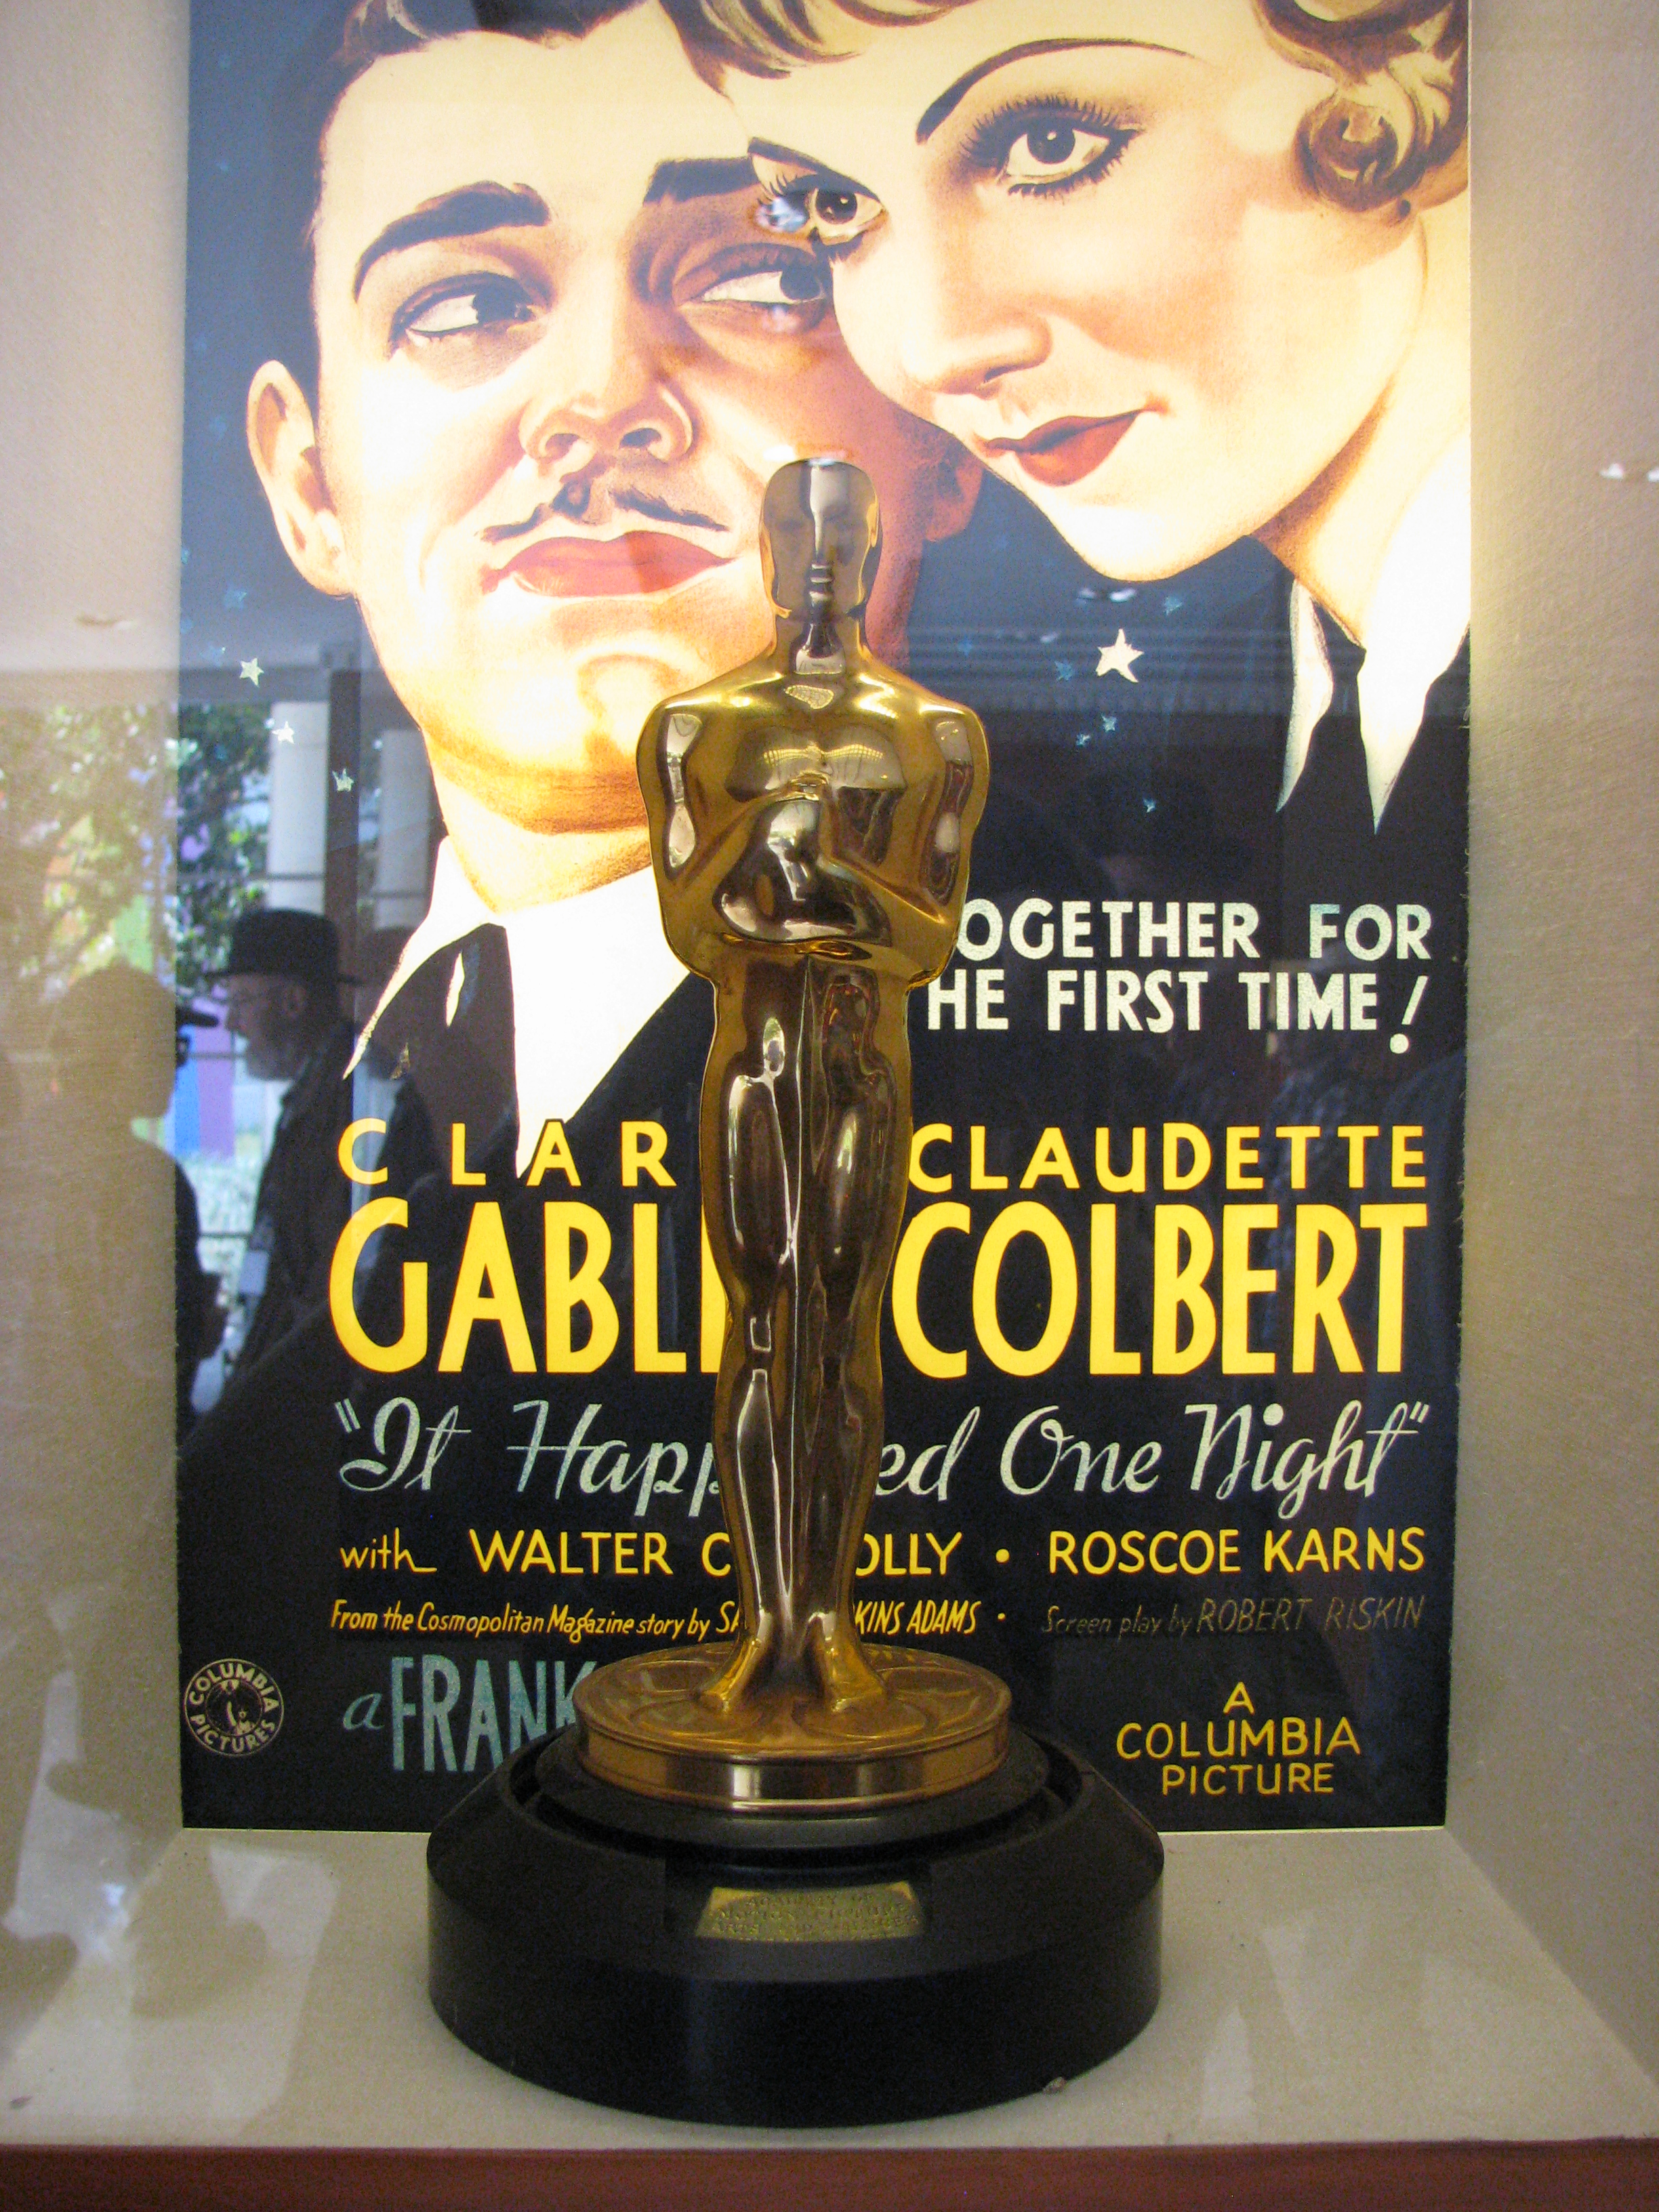 During the studio tour one could see Academy Awards that Columbia Studios won, this one for Best Picture for It Happened One Night.